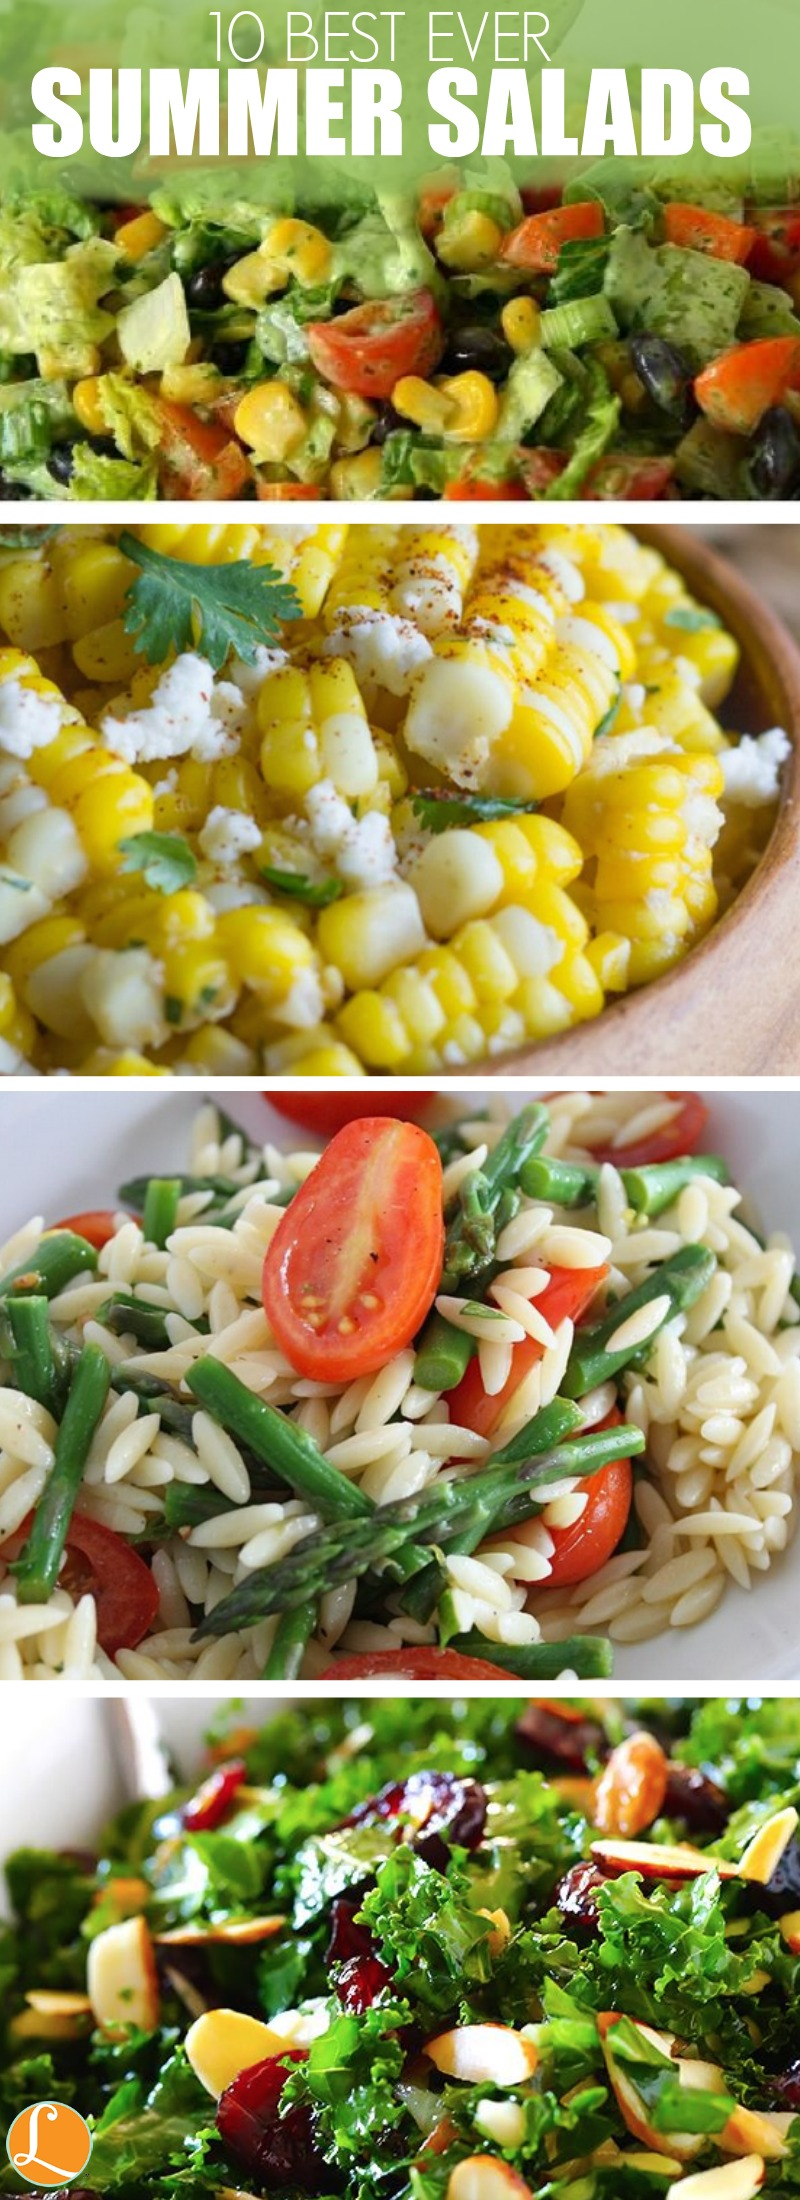 10 Best Summer Salads Living Rich With Coupons 174 Living